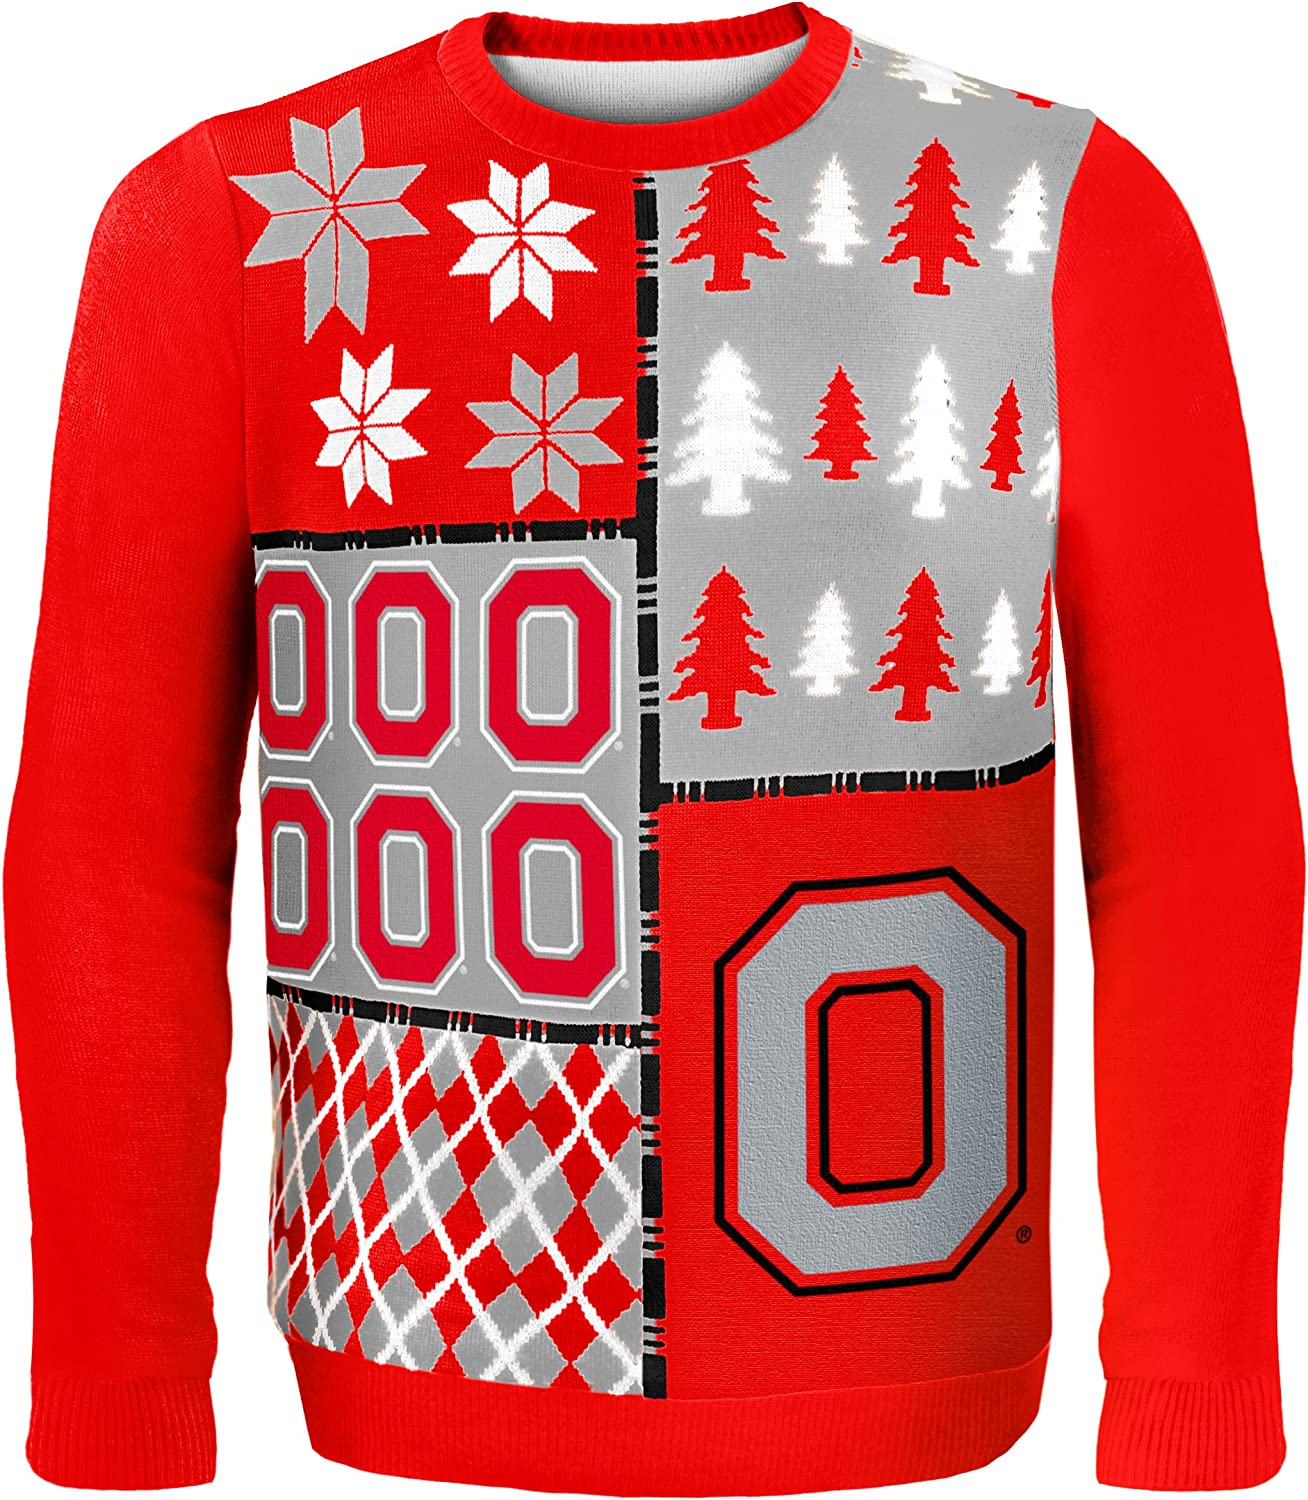 Klew NCAA Luxury goods Busy Block Sweater Large Outlet ☆ Free Shipping Ohio State Buckeyes